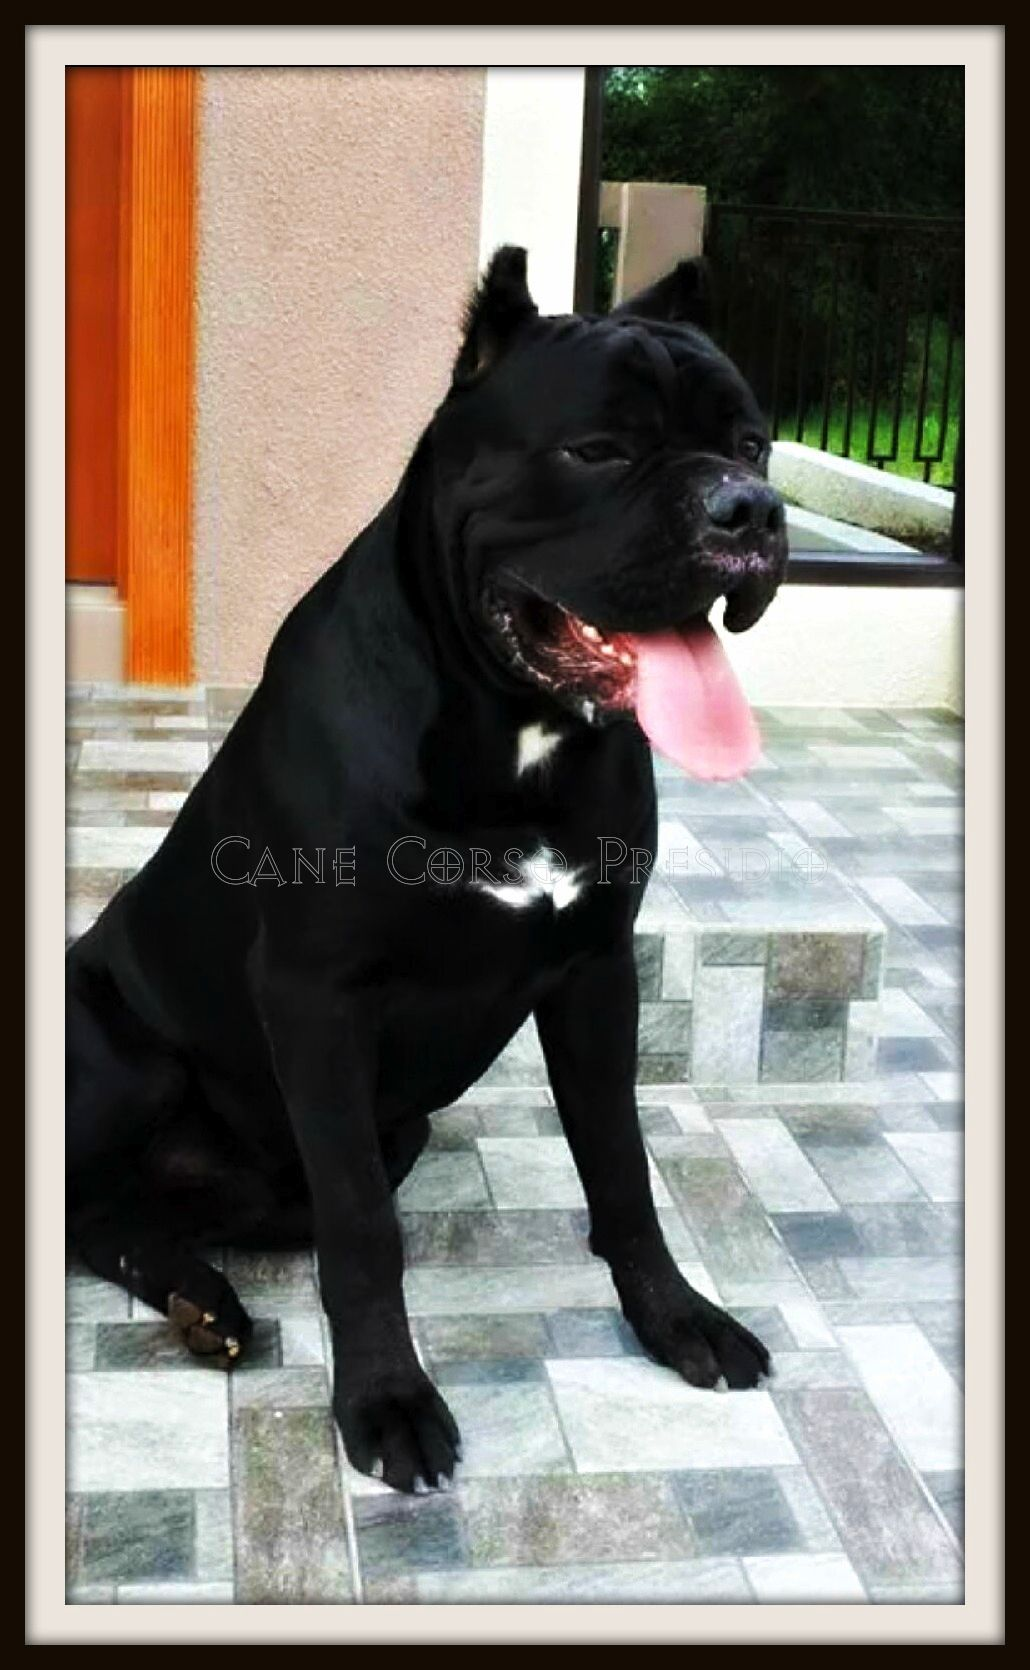 Presidio S Romano Is Now A Resident Of The Philippines Cane Corso Presidio Italian Mastiff Cane Corso Cane Corso Italian Mastiff Dogs